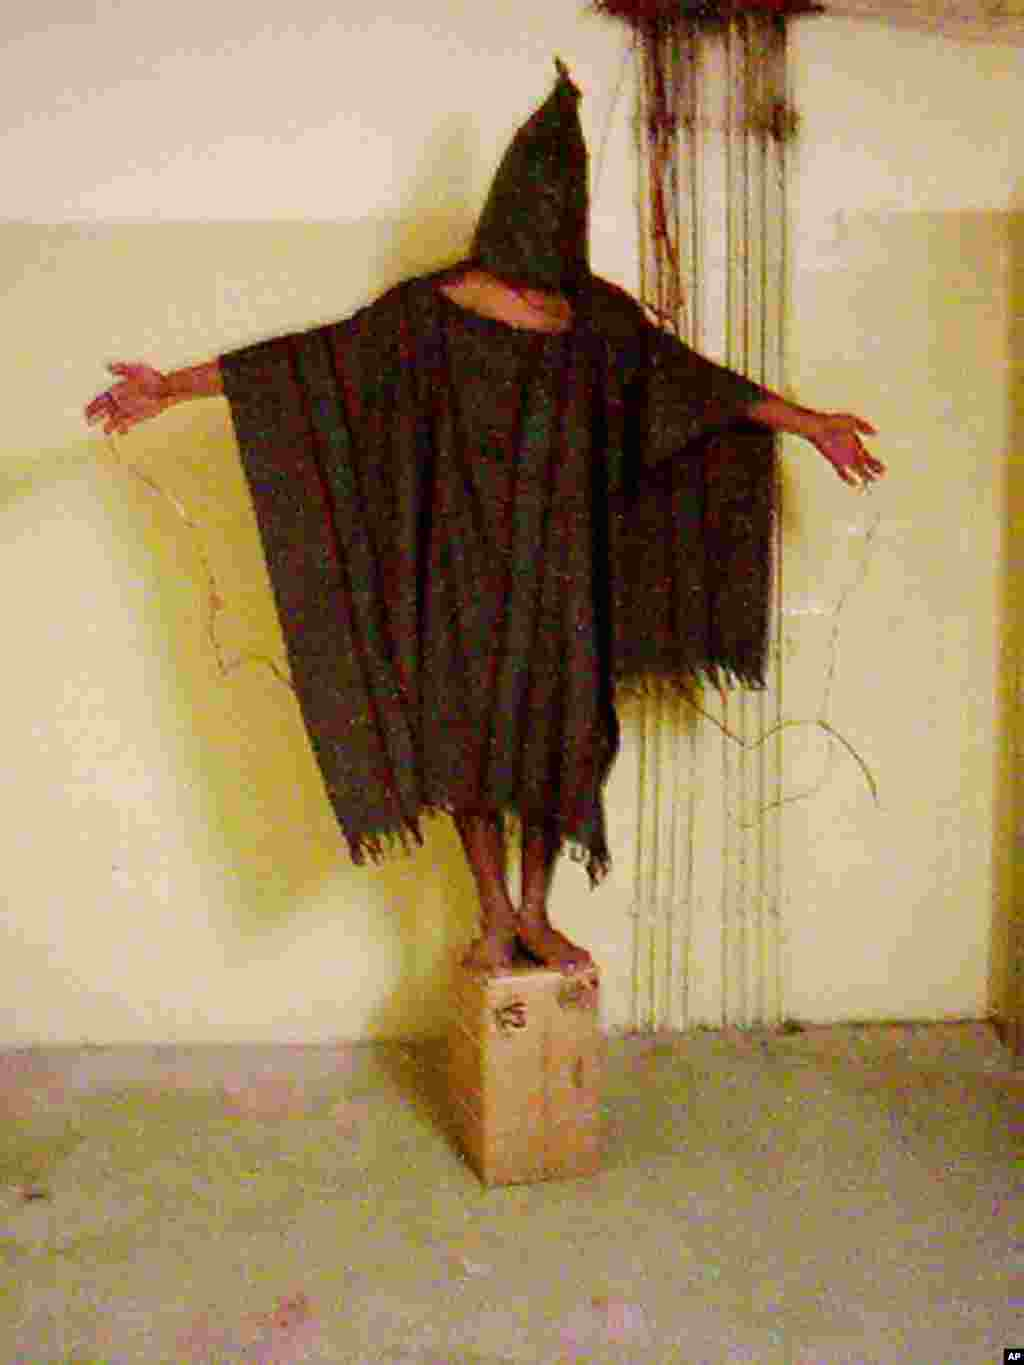 This image obtained by The Associated Press shows an unidentified detainee standing on a box with a bag on his head and wires attatched to him in late 2003 at the Abu Ghraib prison in Baghdad, Iraq.